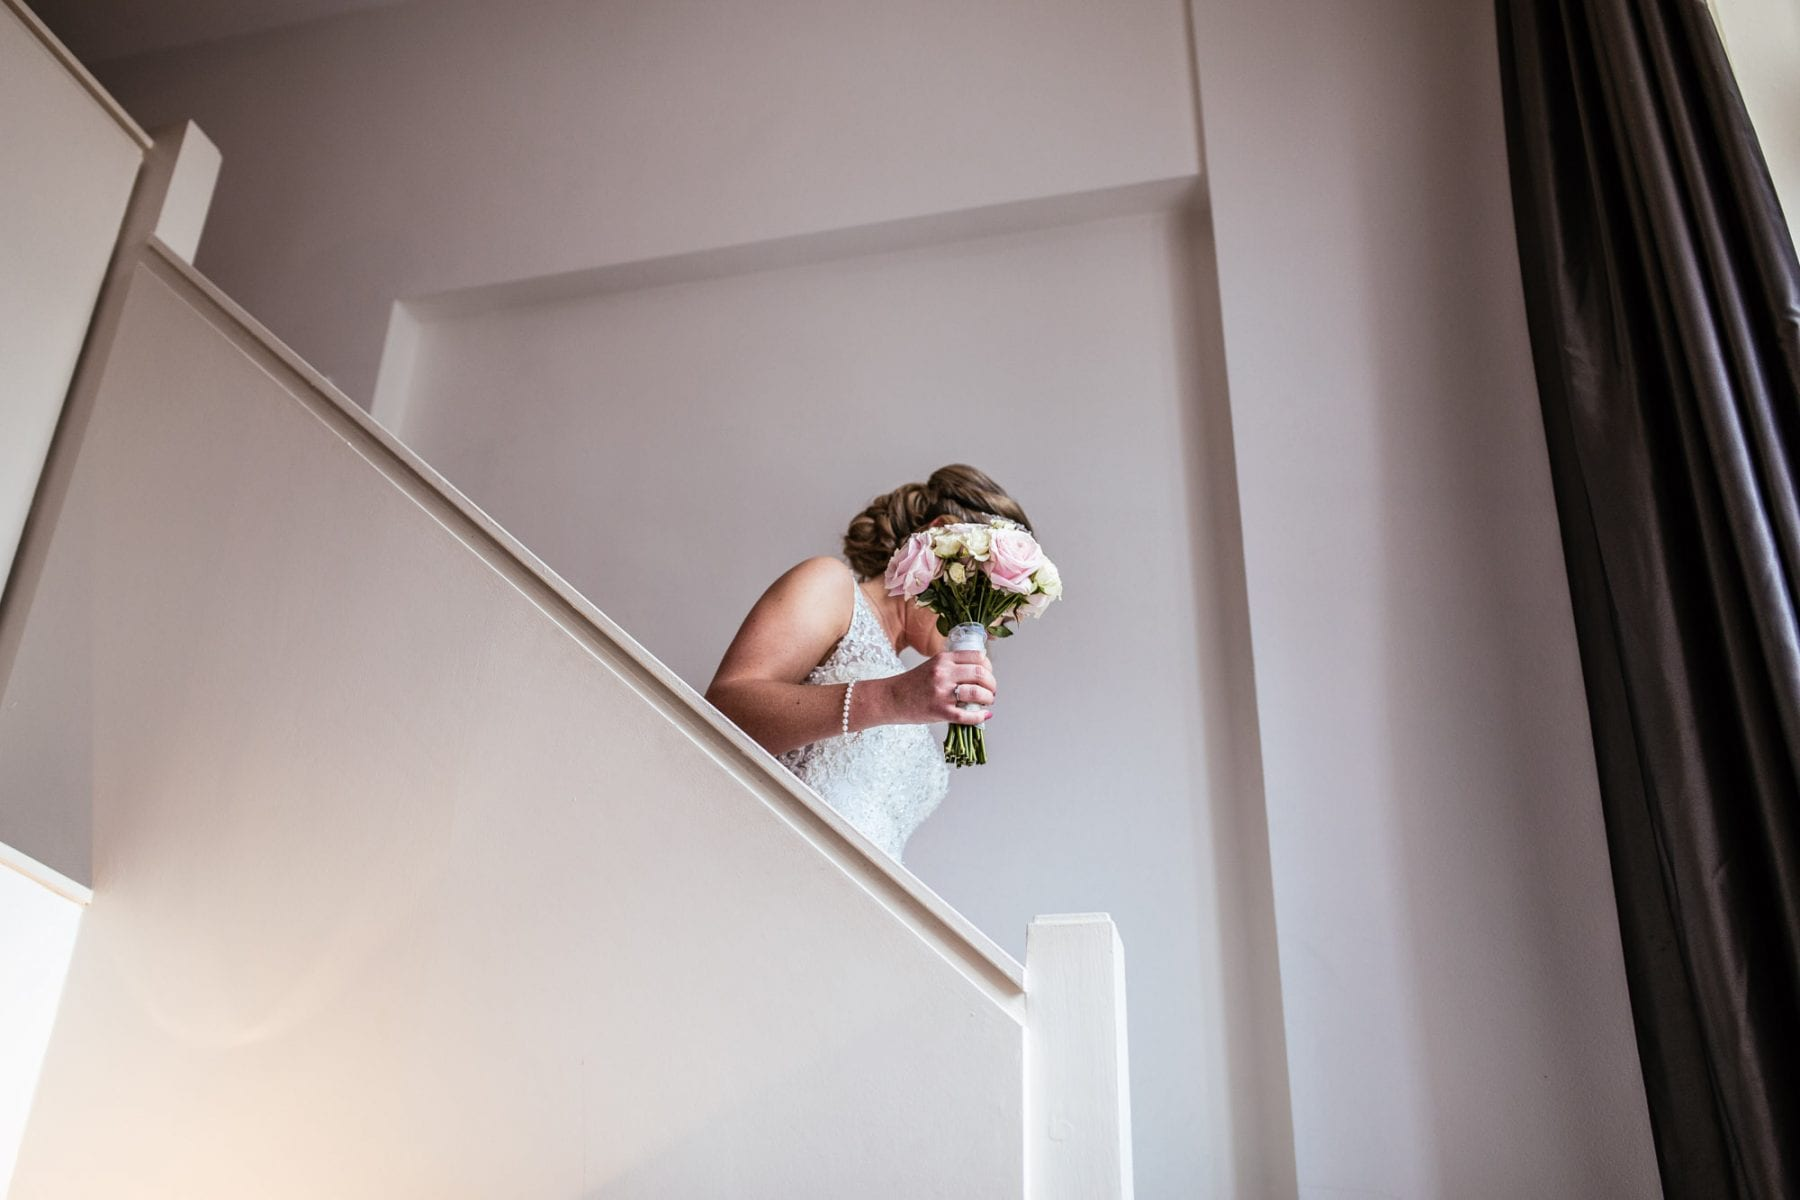 On the 7th Manchester Wedding Photography